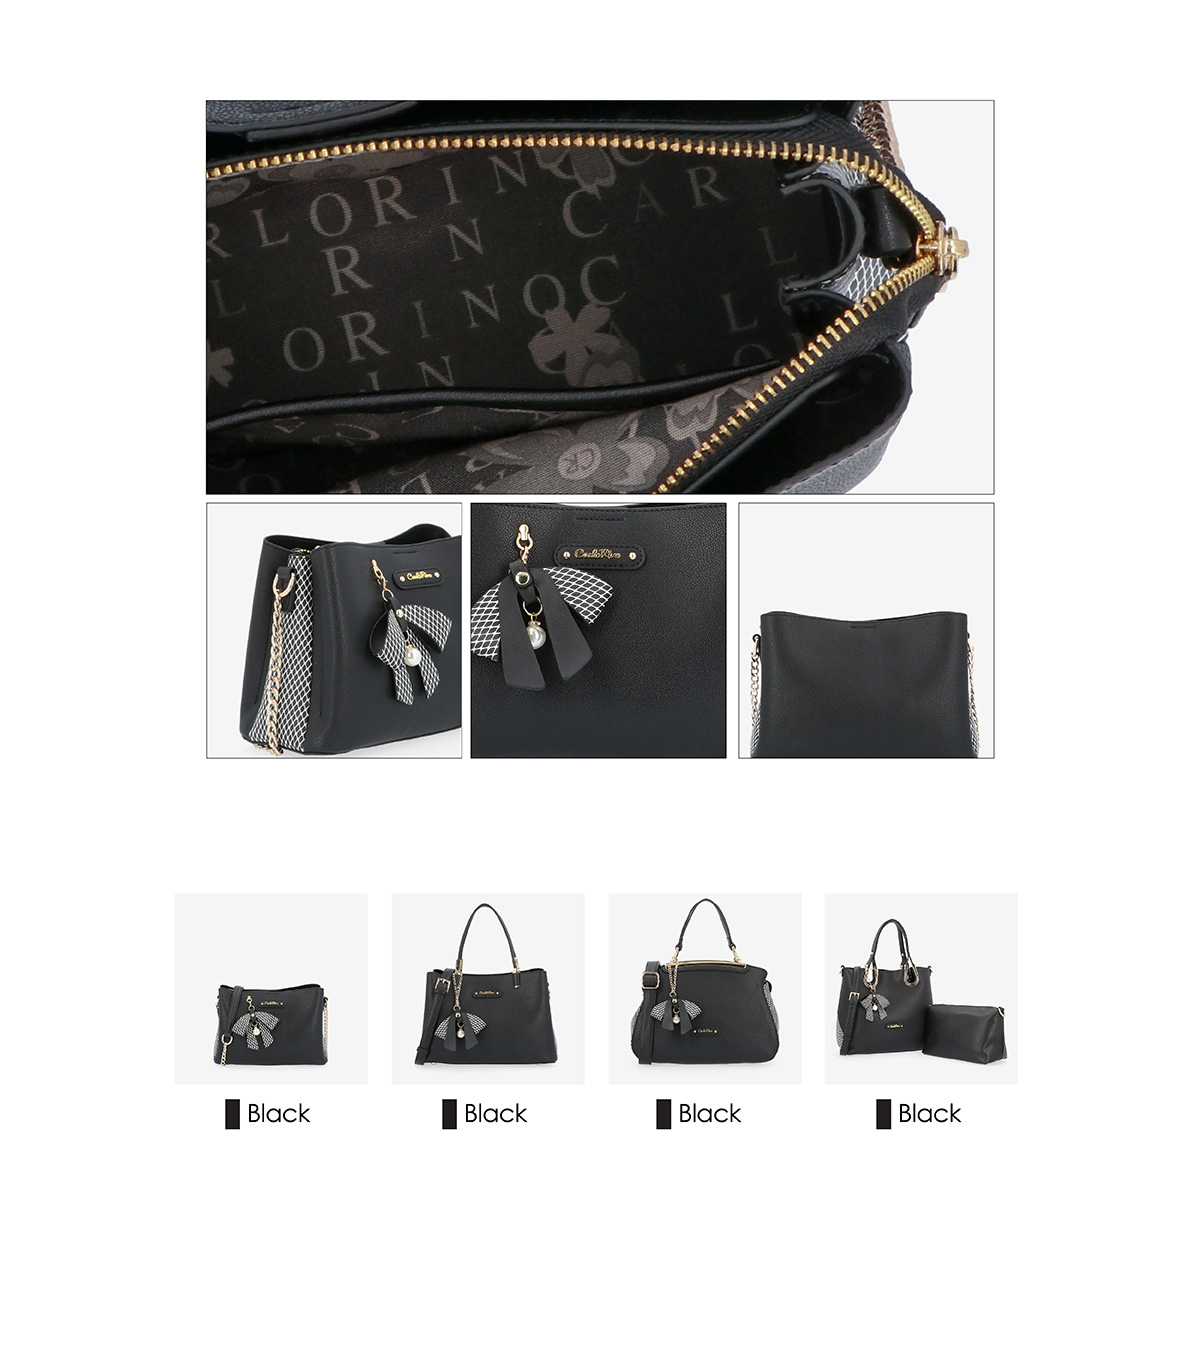 0304924G 001 08 03 - What a Mesh Chain Link Cross Body